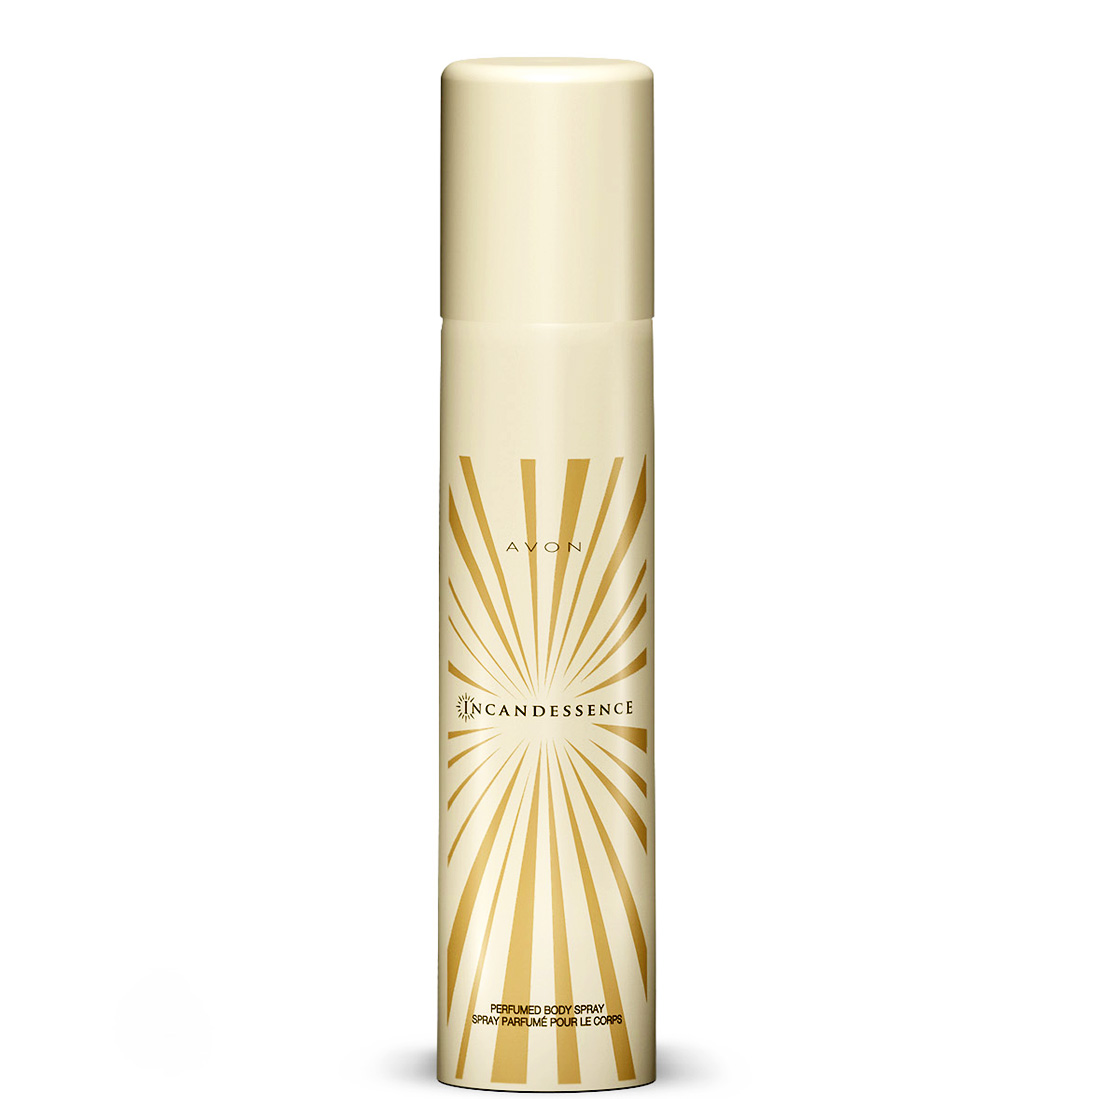 Incandessence Perfumed Body Spray For Her by AVON